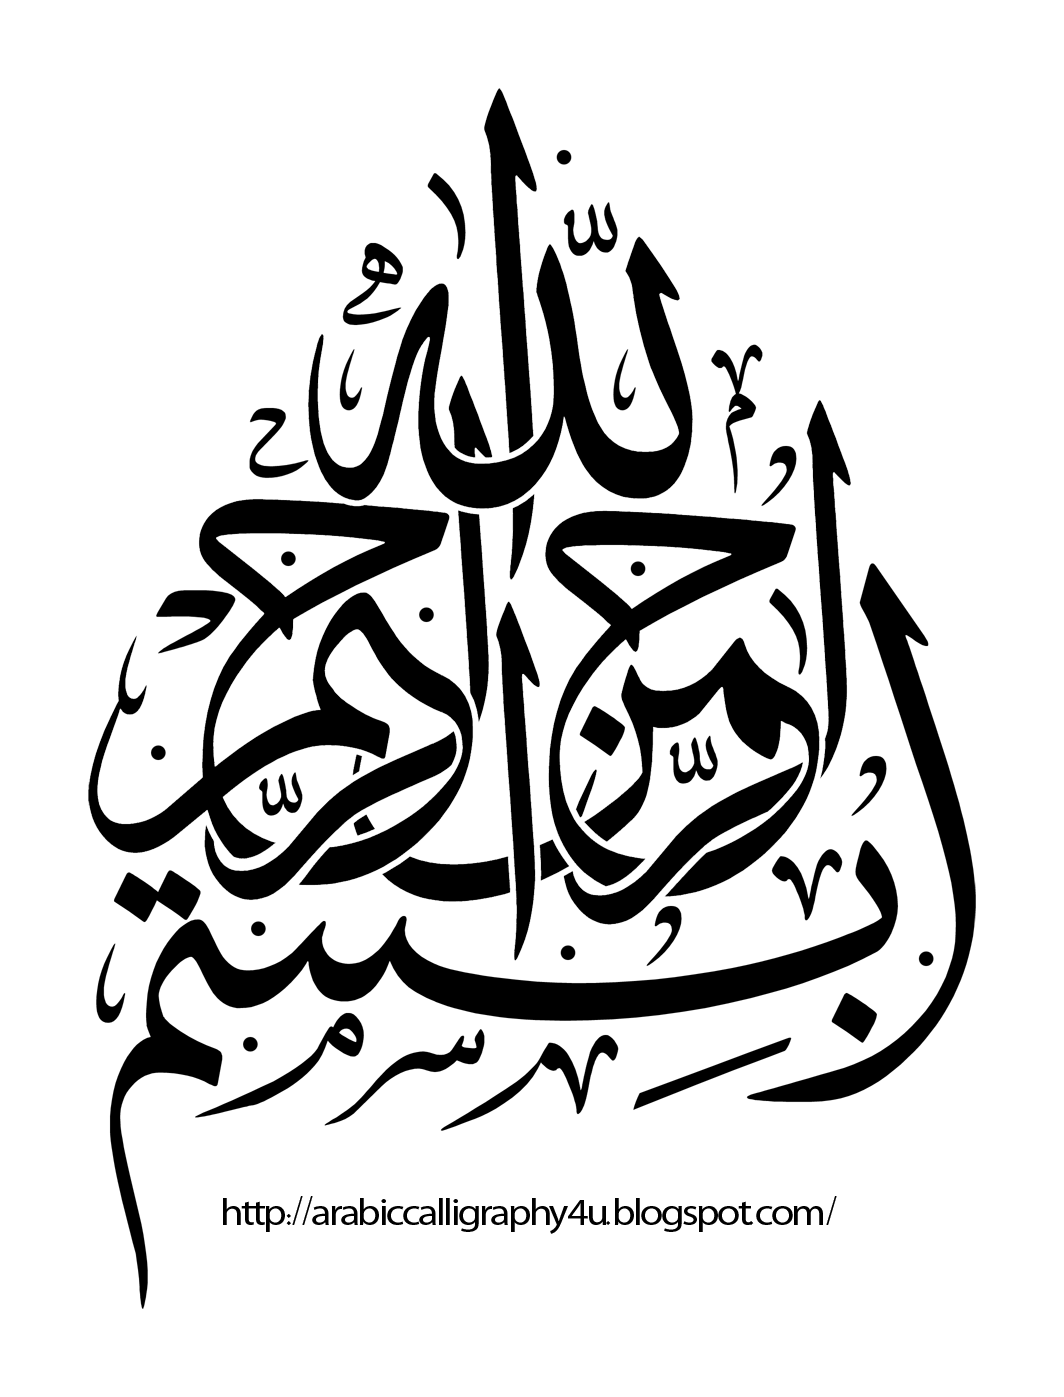 free islamic calligraphy download-part 04